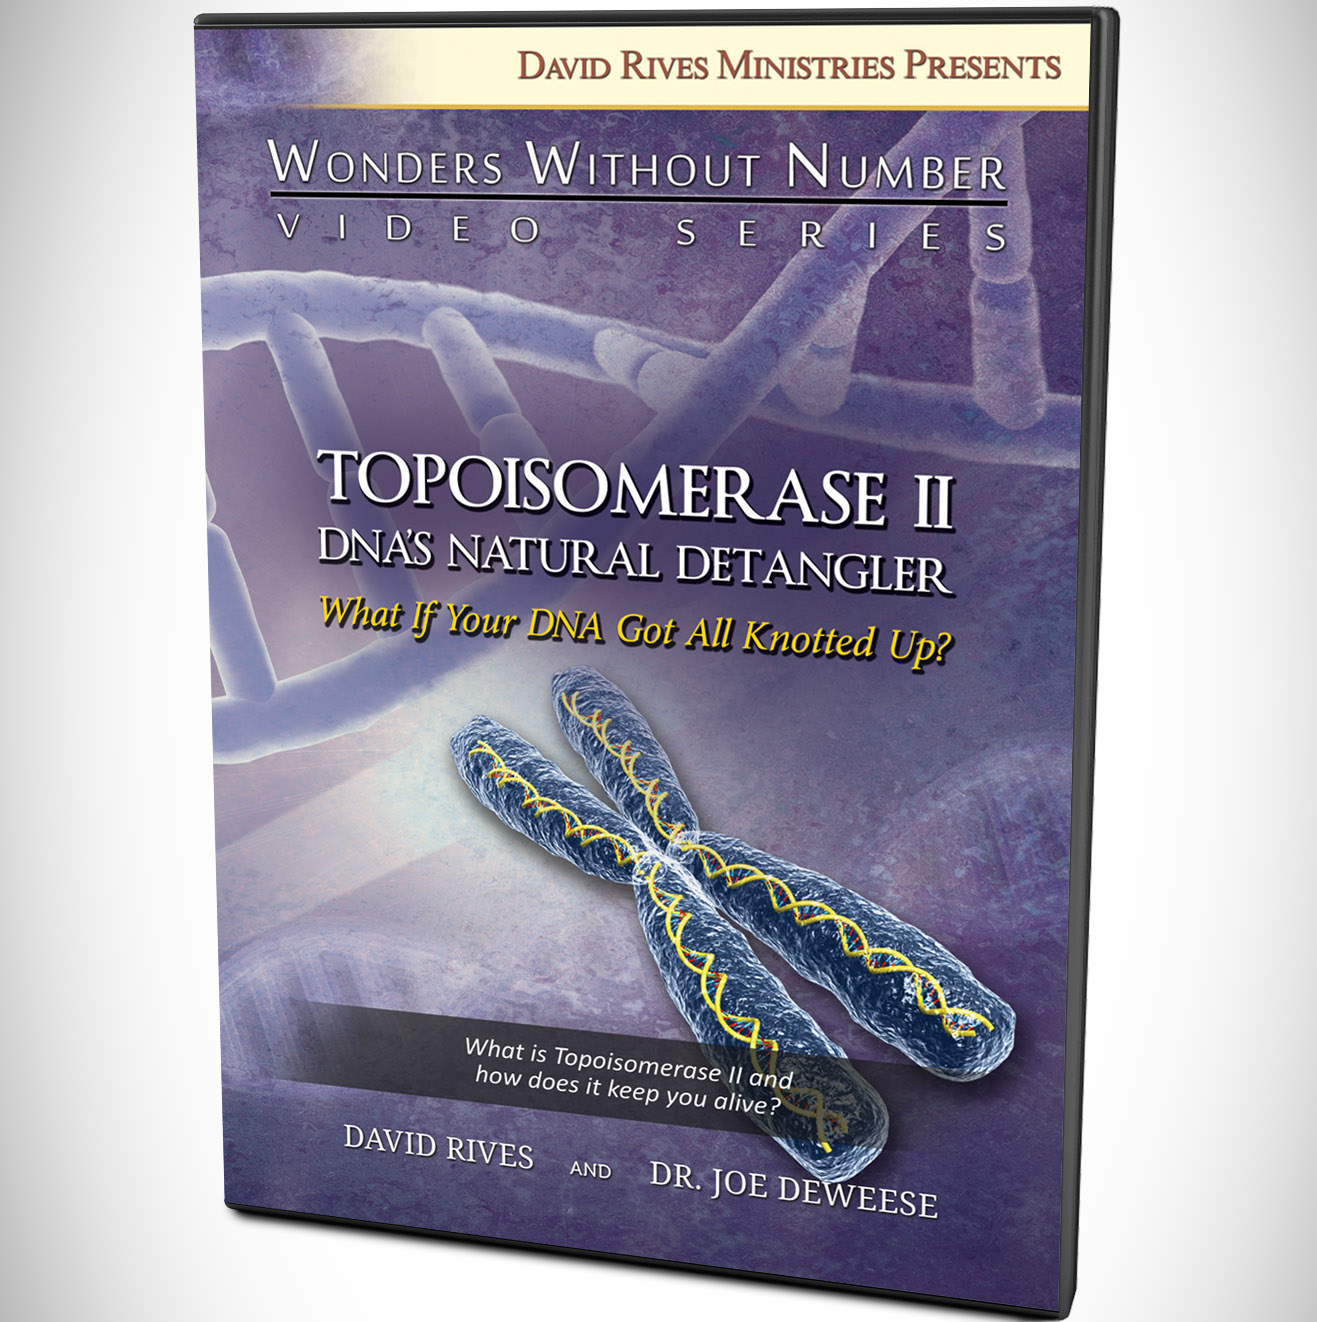 Topoisomerase ii dnas natural detangler drm topoisomerase ii dnas natural detangler malvernweather Gallery